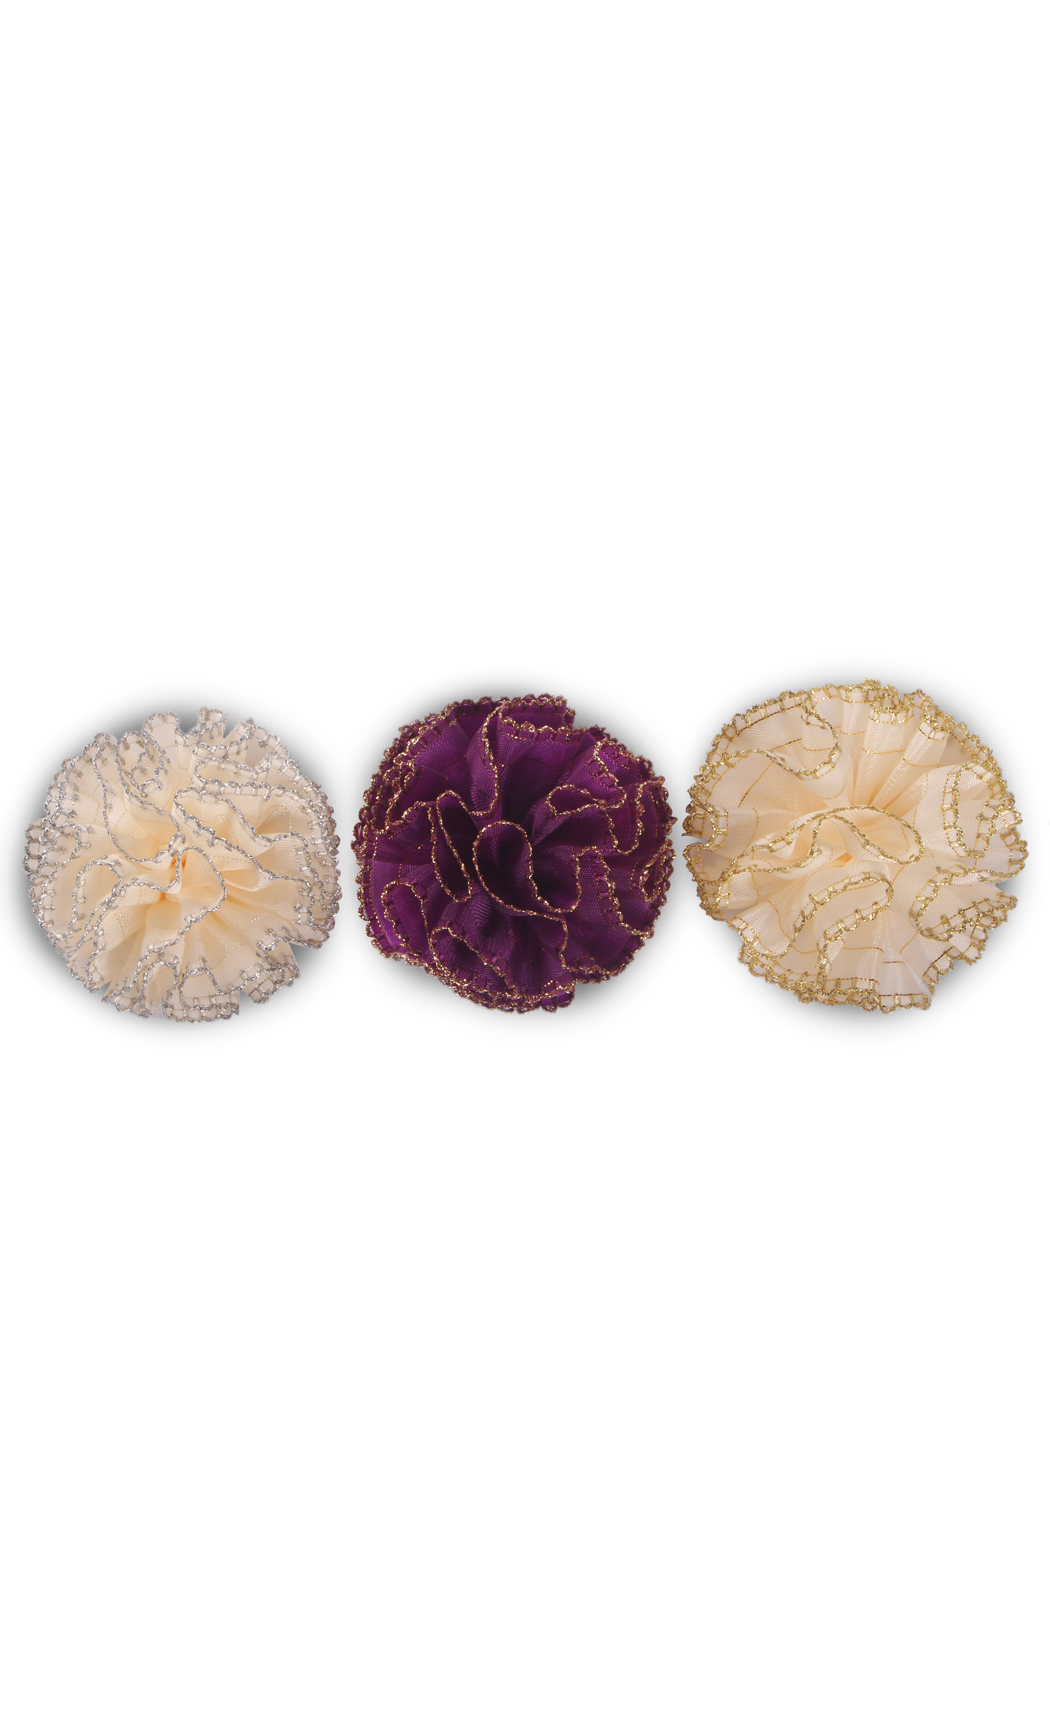 Ready to Stick Crochet Bows (Set of 3) - Buy Online